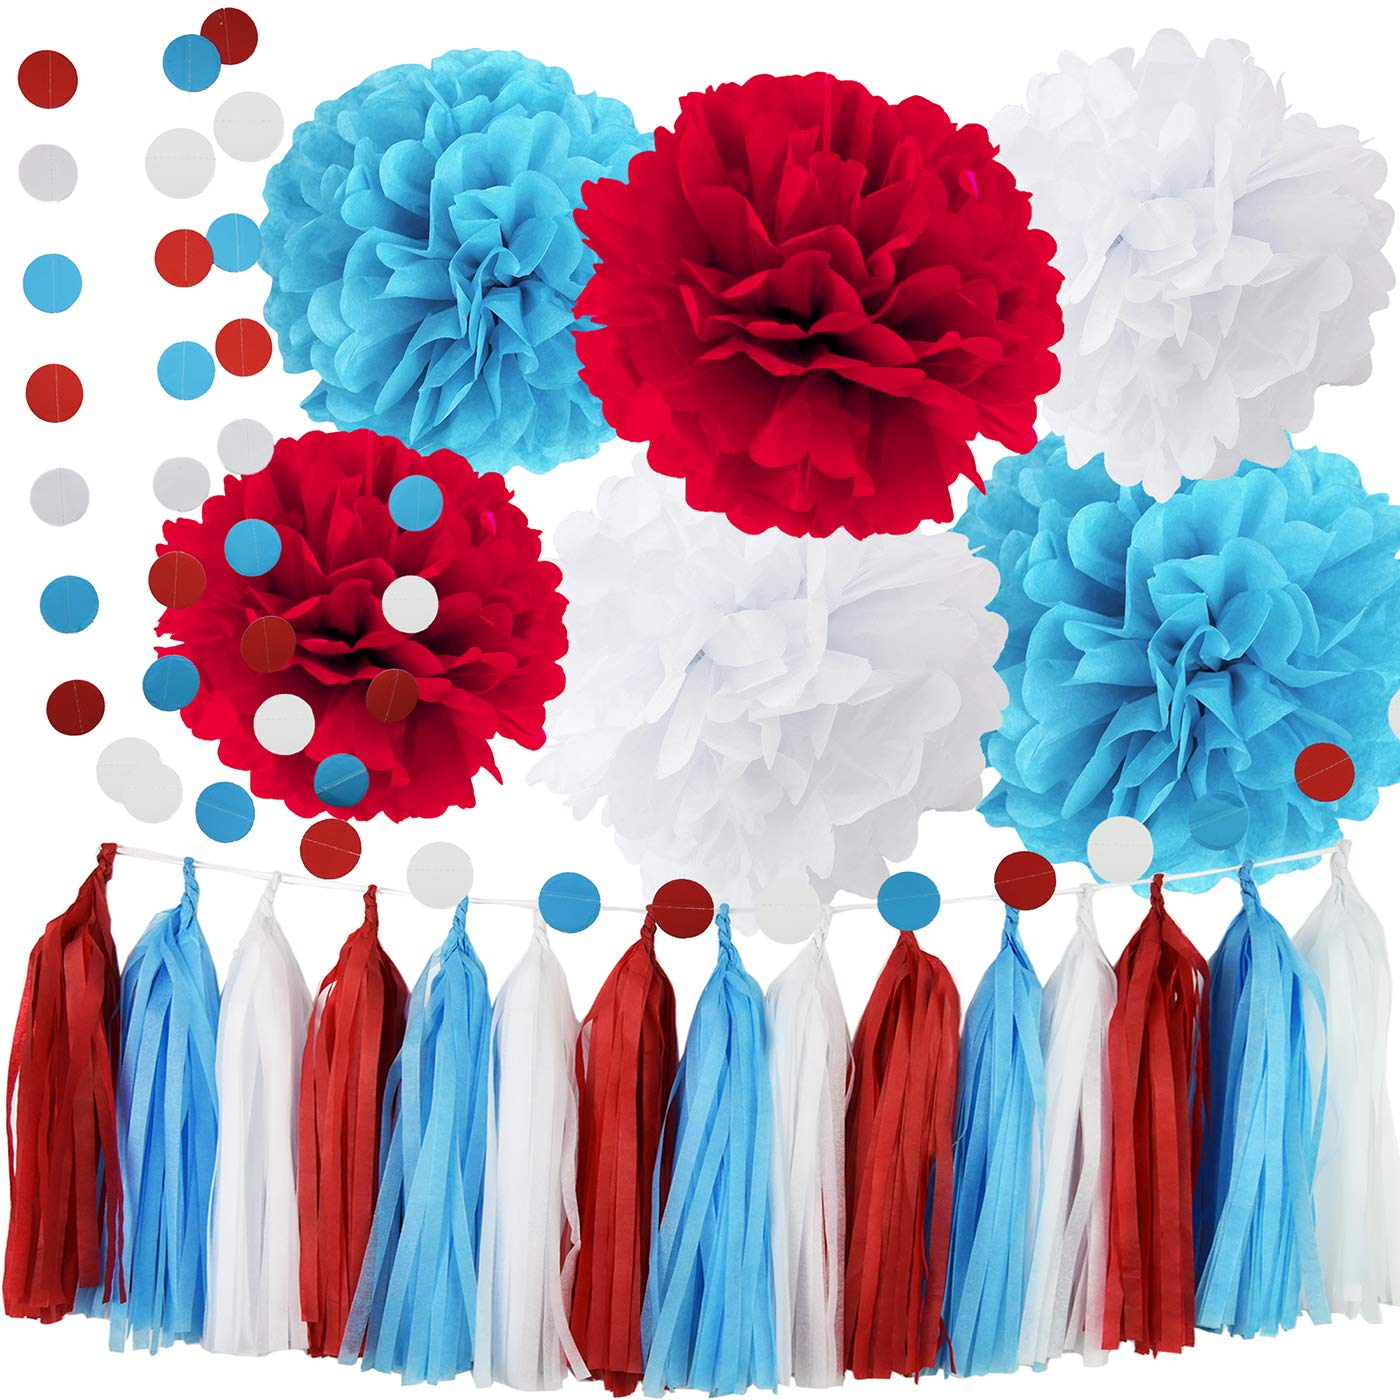 Dr Seuss Cat in The Hat Party/Dr Suess Decor Bridal Shower Decorations Turquoise White Red Tissue Pom Pom Circle Garland for Baby Shower Decorations/Birthday Decorations/Aqua Red Wedding Decorations